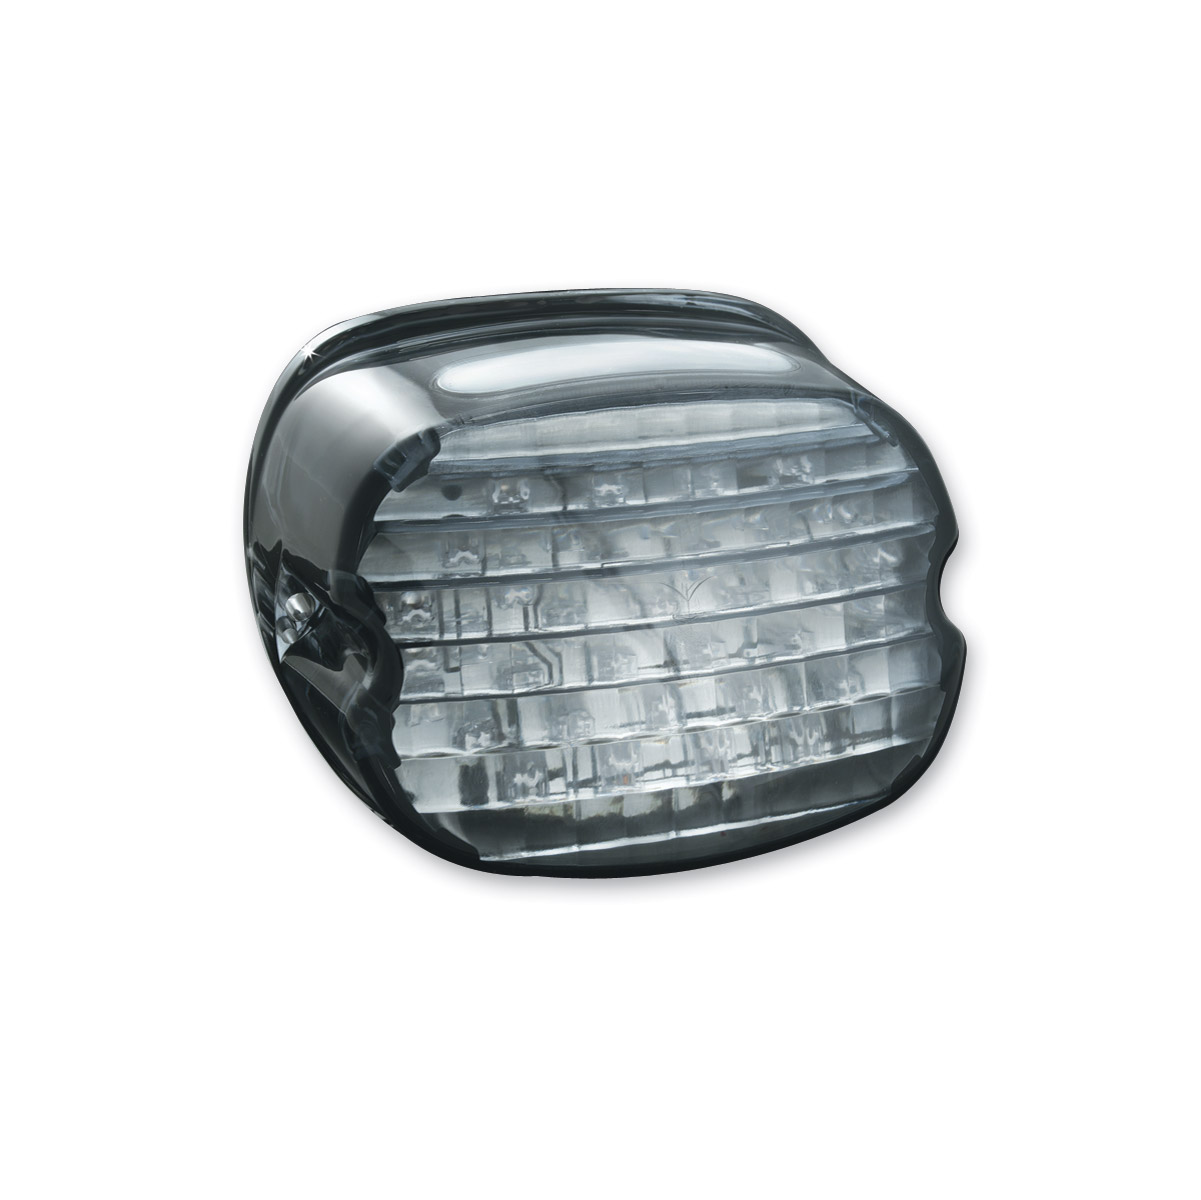 Led Lights For Motorcycle >> Kuryakyn Low Profile Smoke LED Taillight Conversion | 363-519 | J&P Cycles